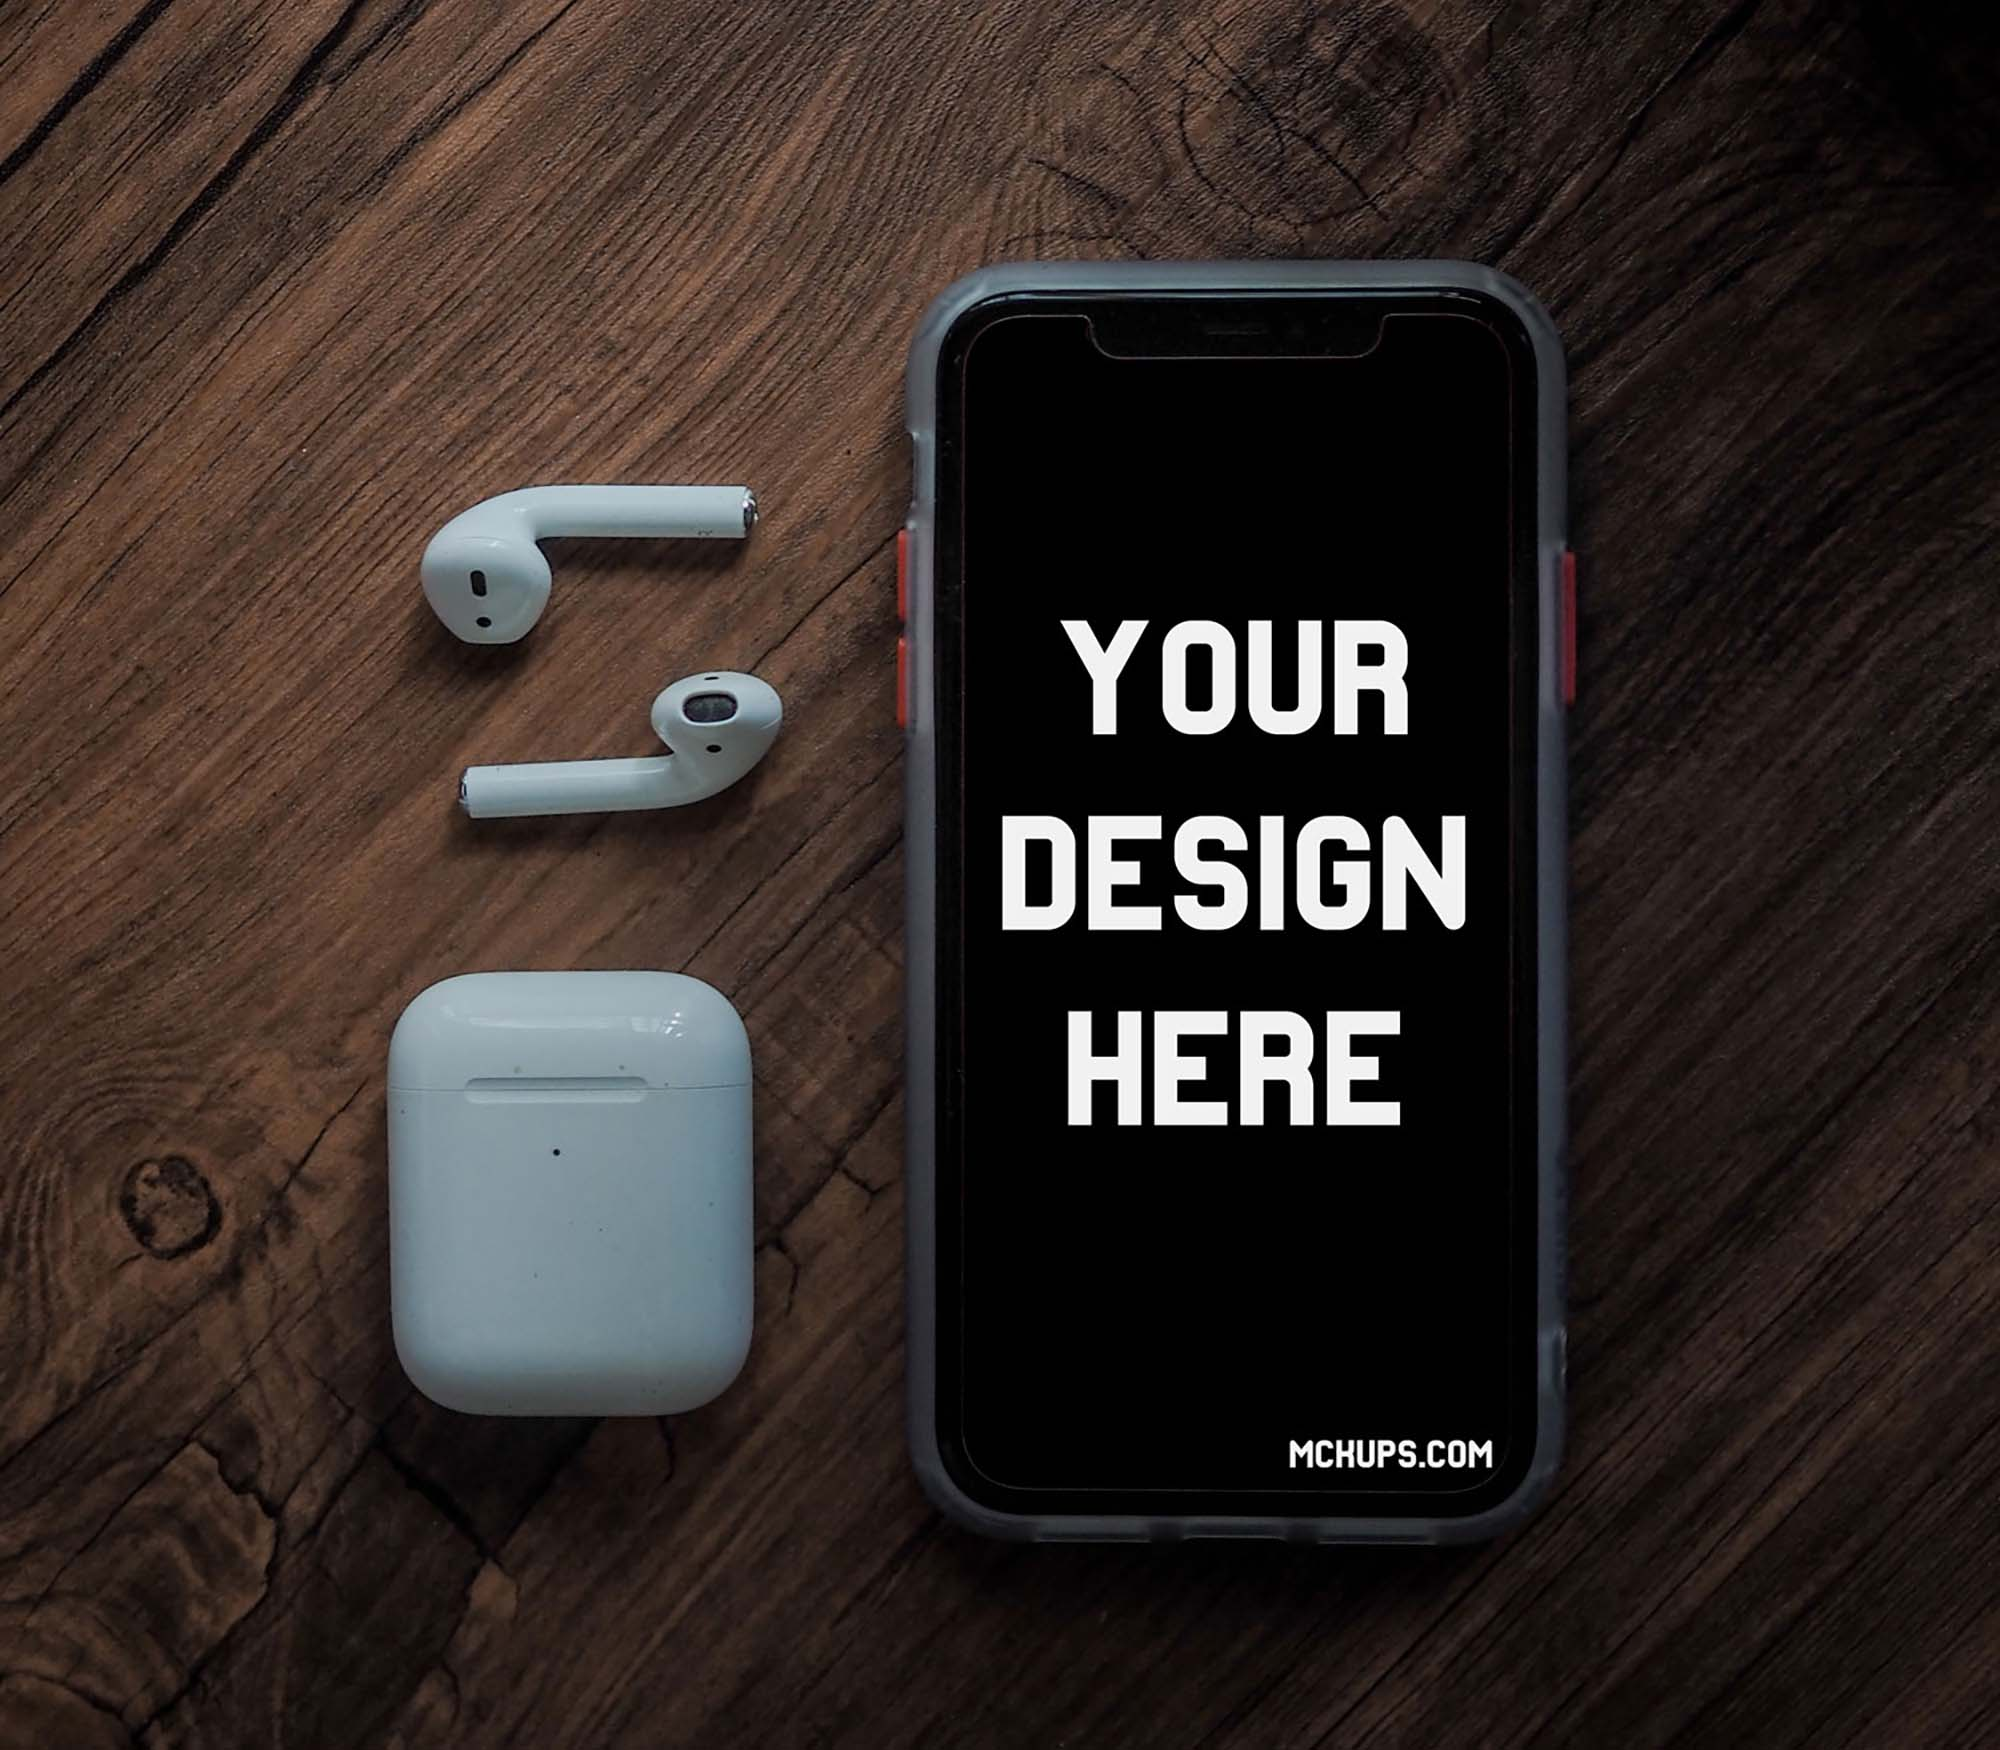 iPhone with AirPods Mockup